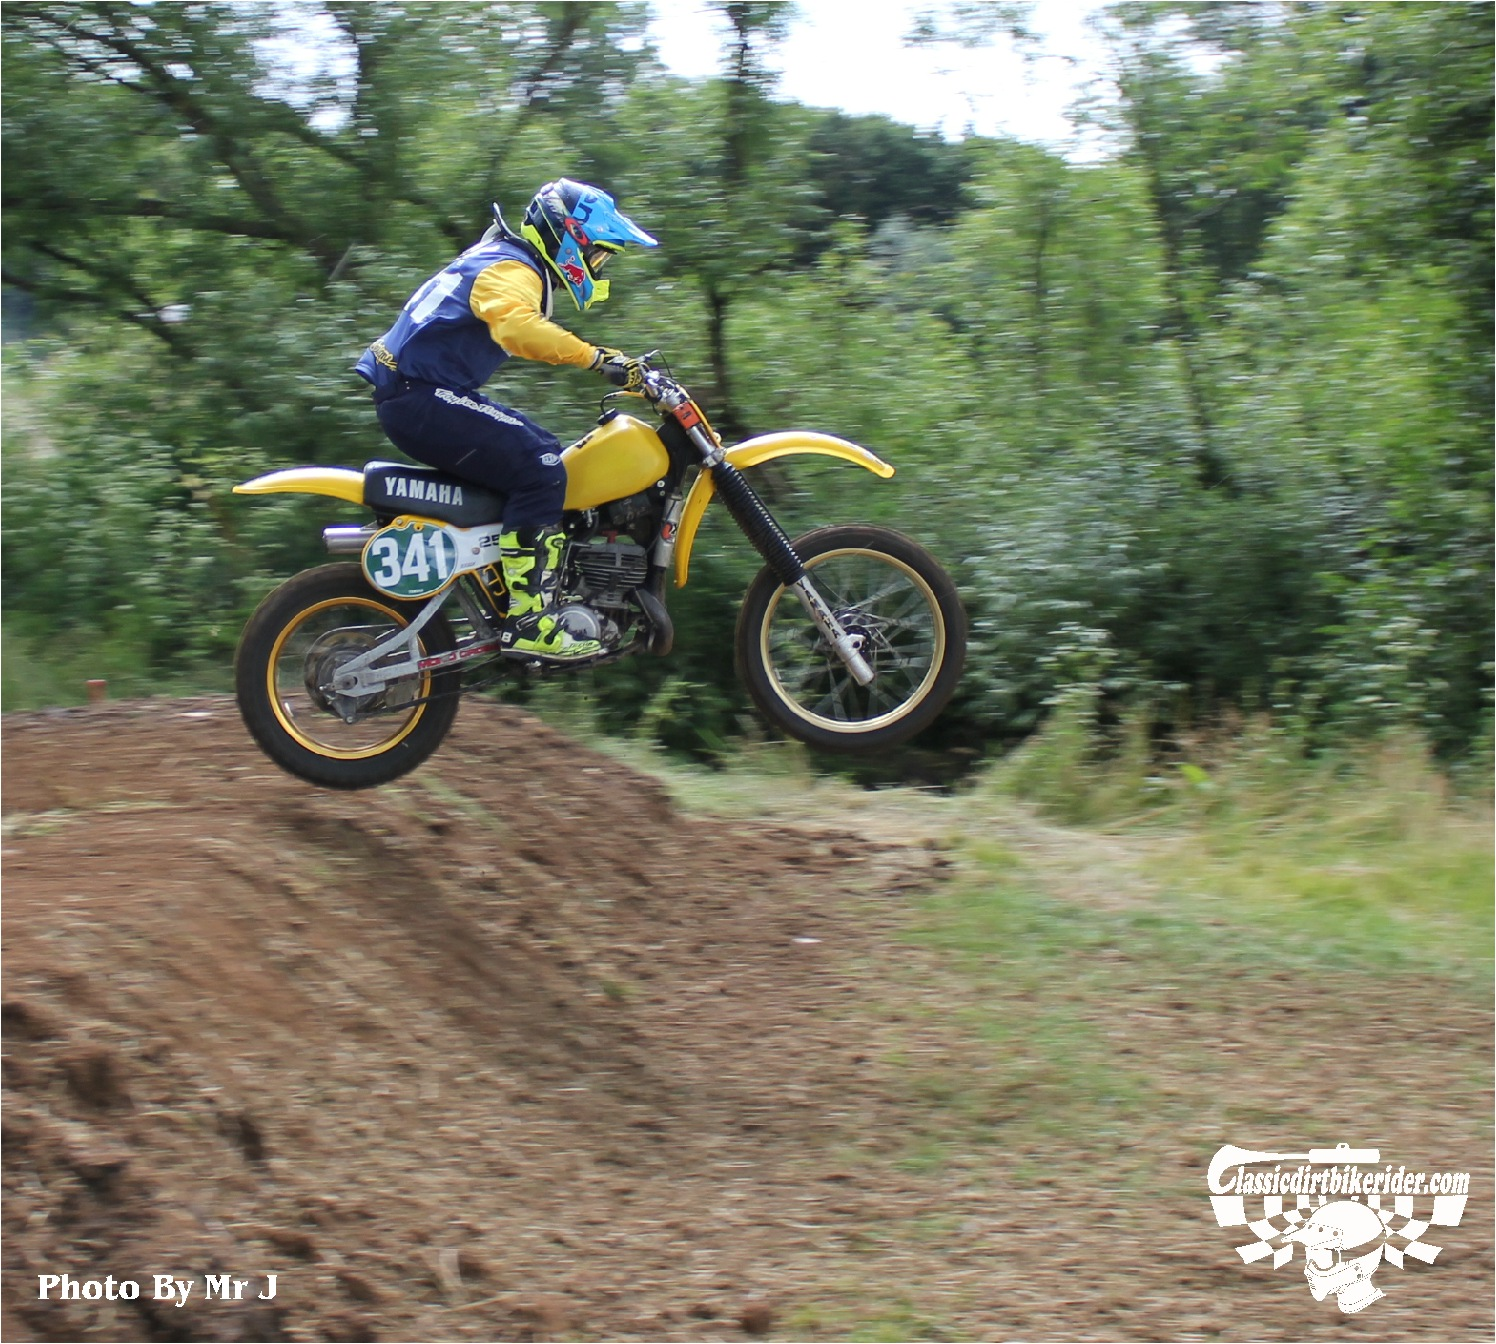 king of the castle 2015 photos Farleigh Castle twinshock motocross classicdirtbikerider.com 36